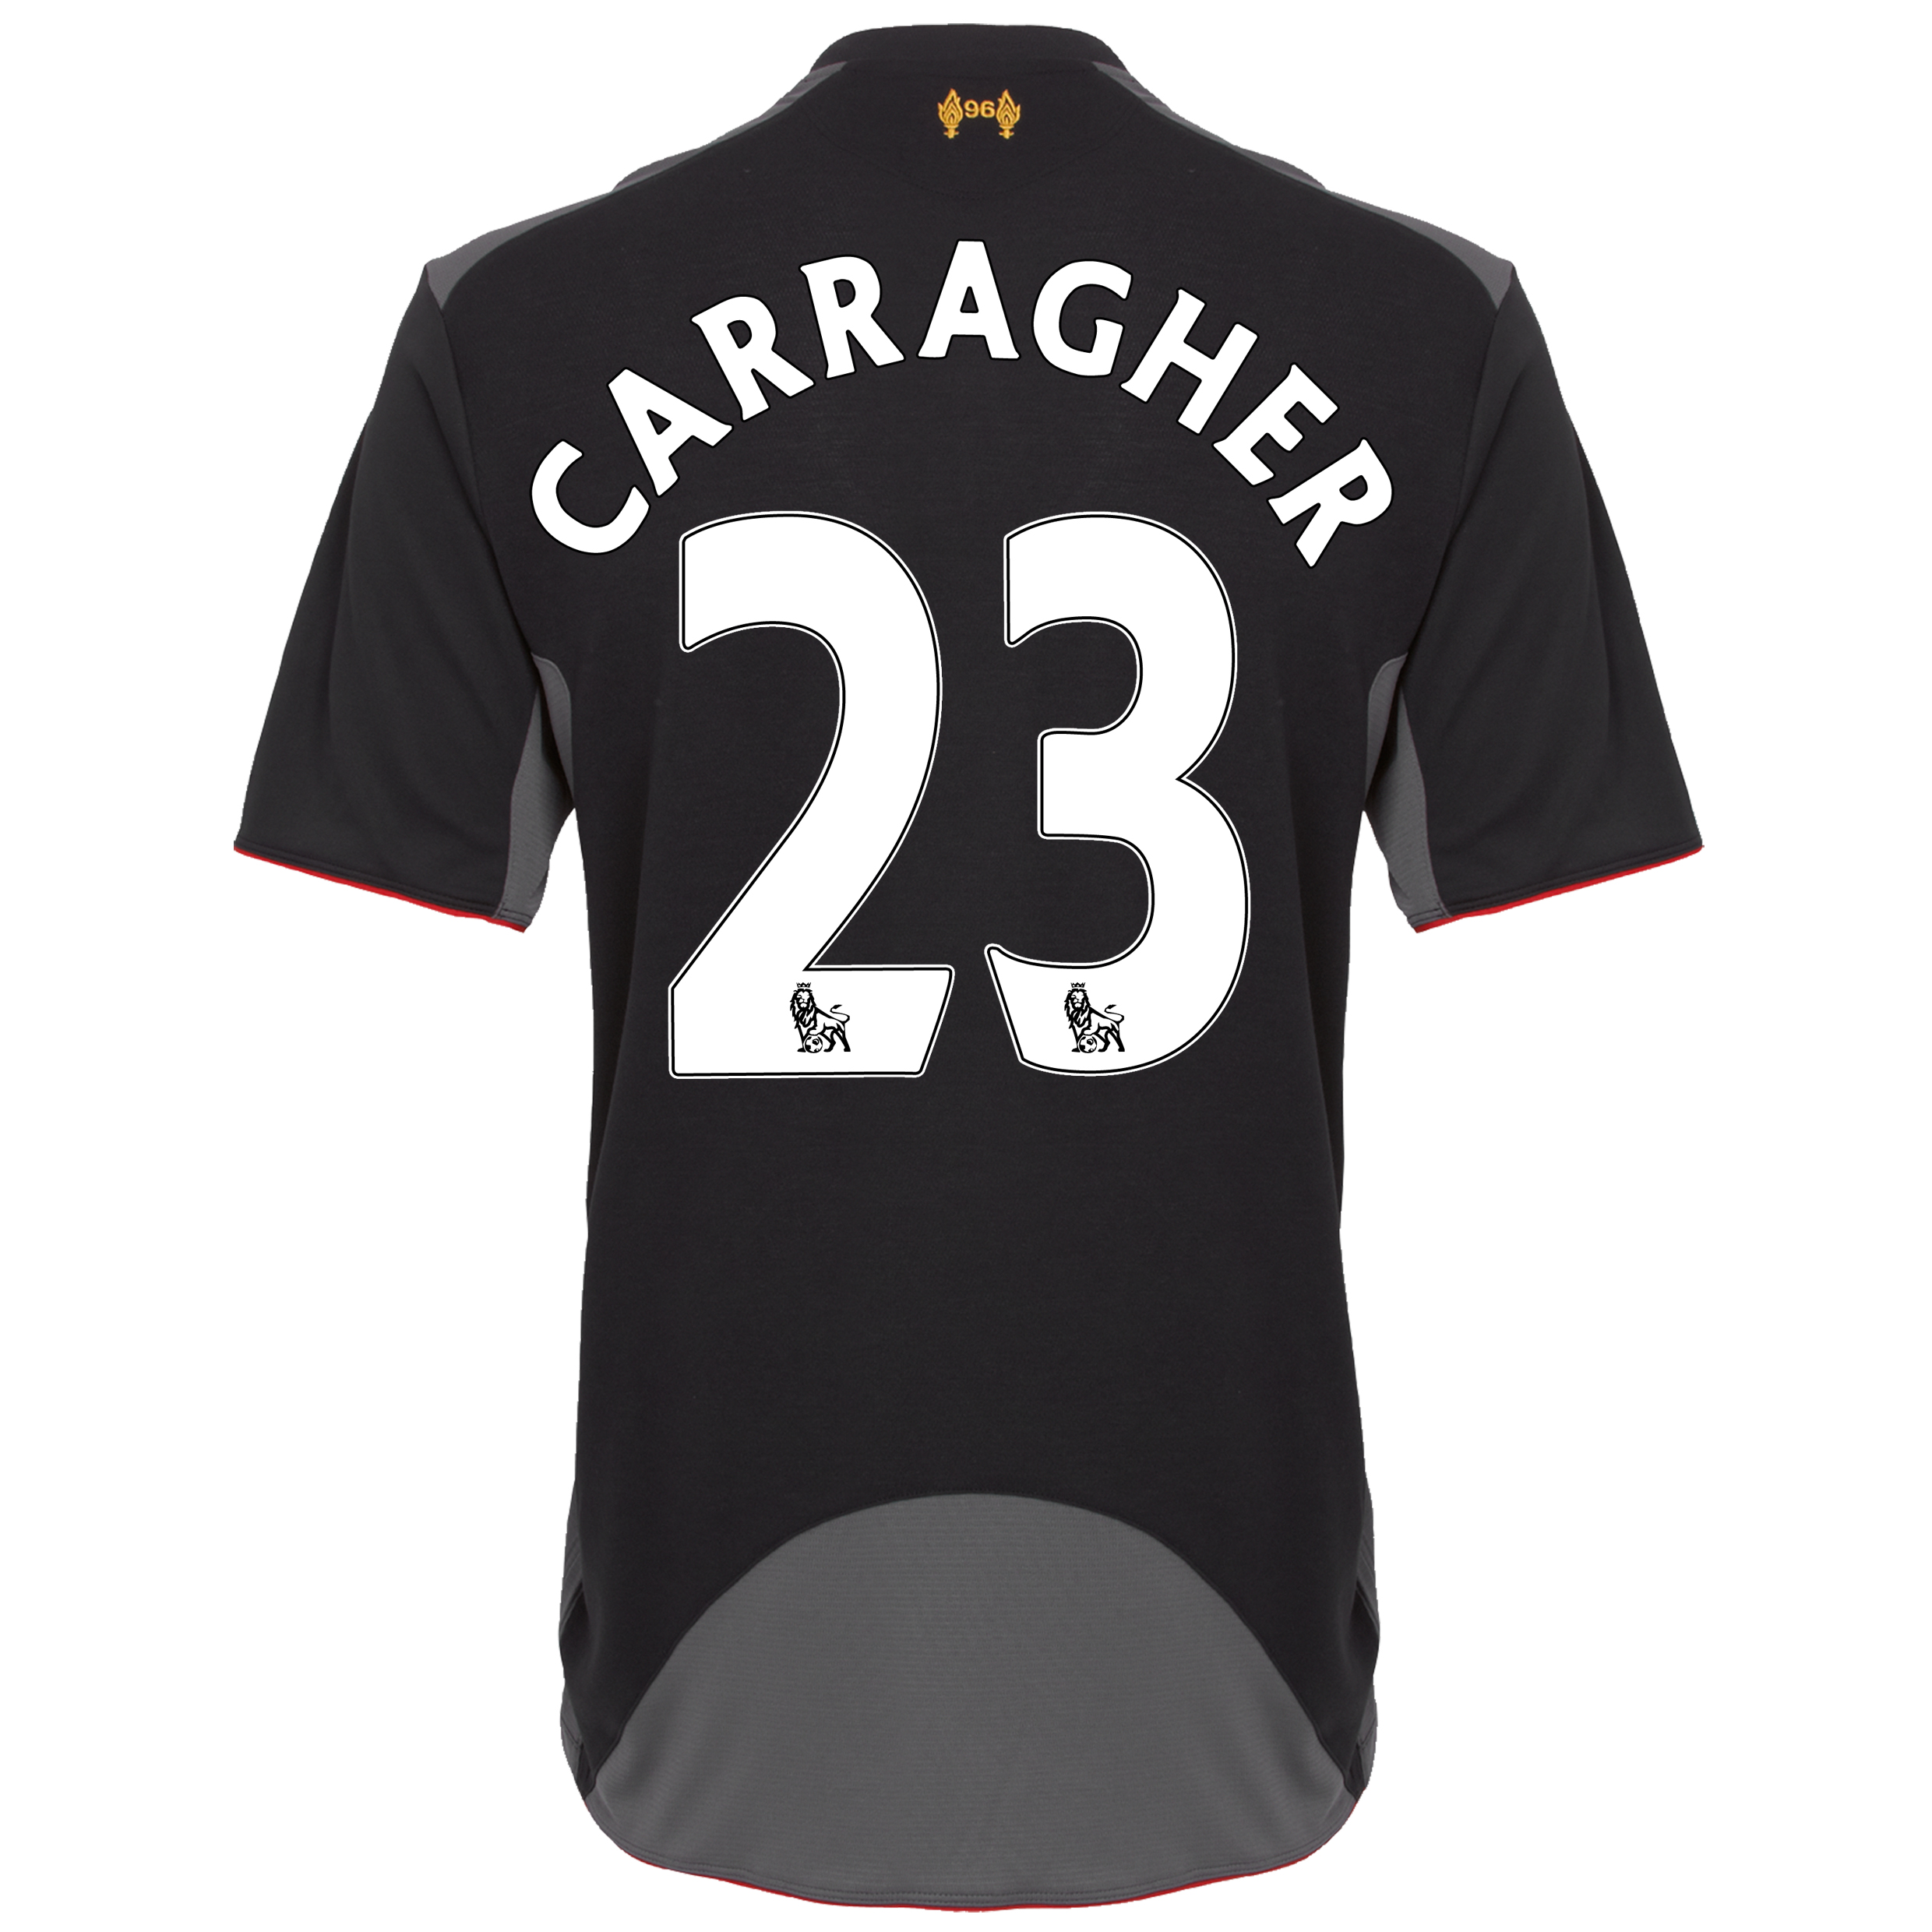 Liverpool Away Shirt 2012/13 - Youths with Carragher 23 printing